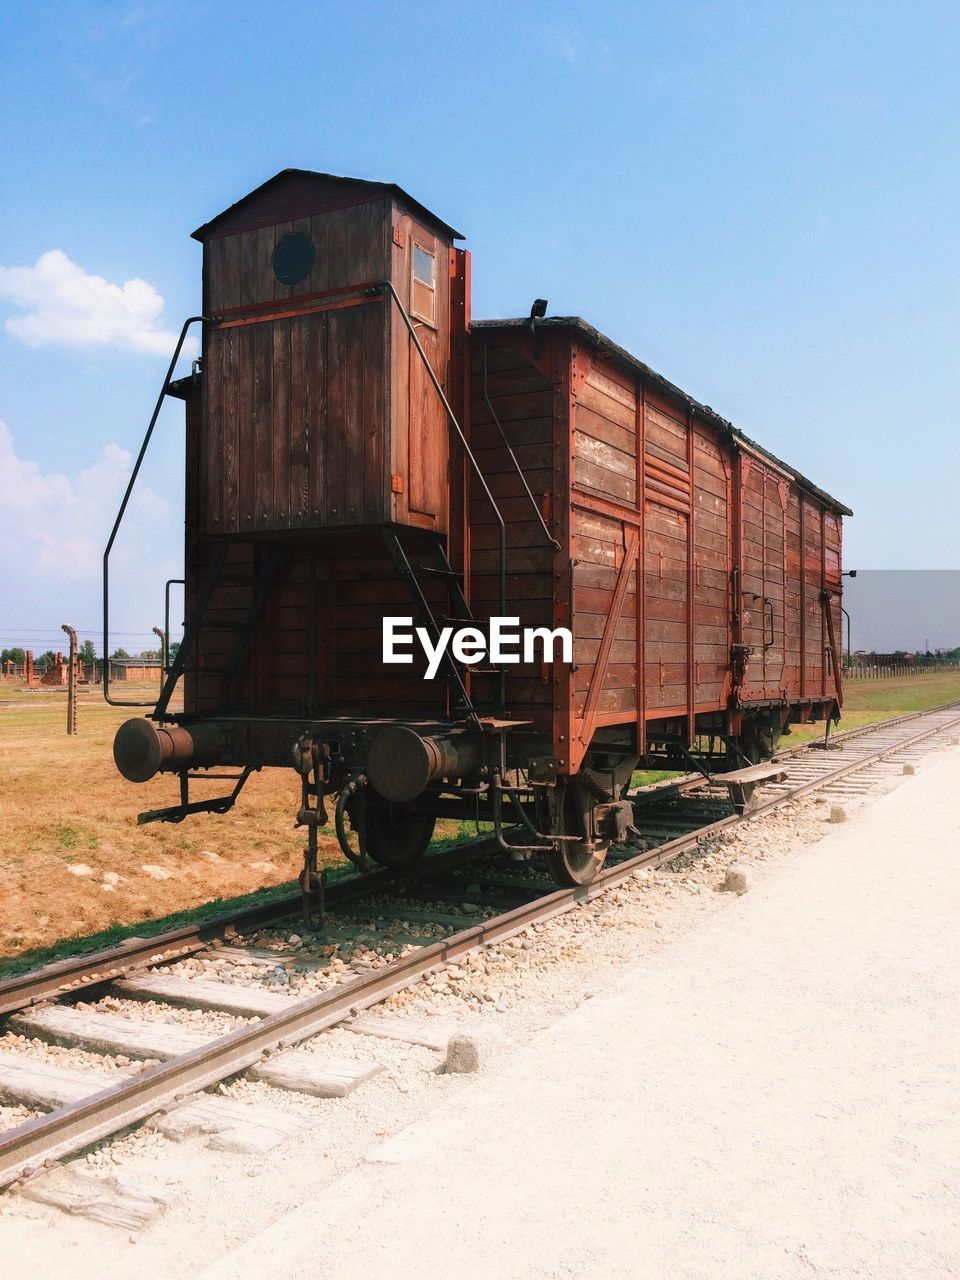 sky, rail transportation, transportation, track, railroad track, train, mode of transportation, day, nature, train - vehicle, abandoned, rusty, land, business, sunlight, no people, old, clear sky, outdoors, metal, deterioration, shunting yard, railroad car